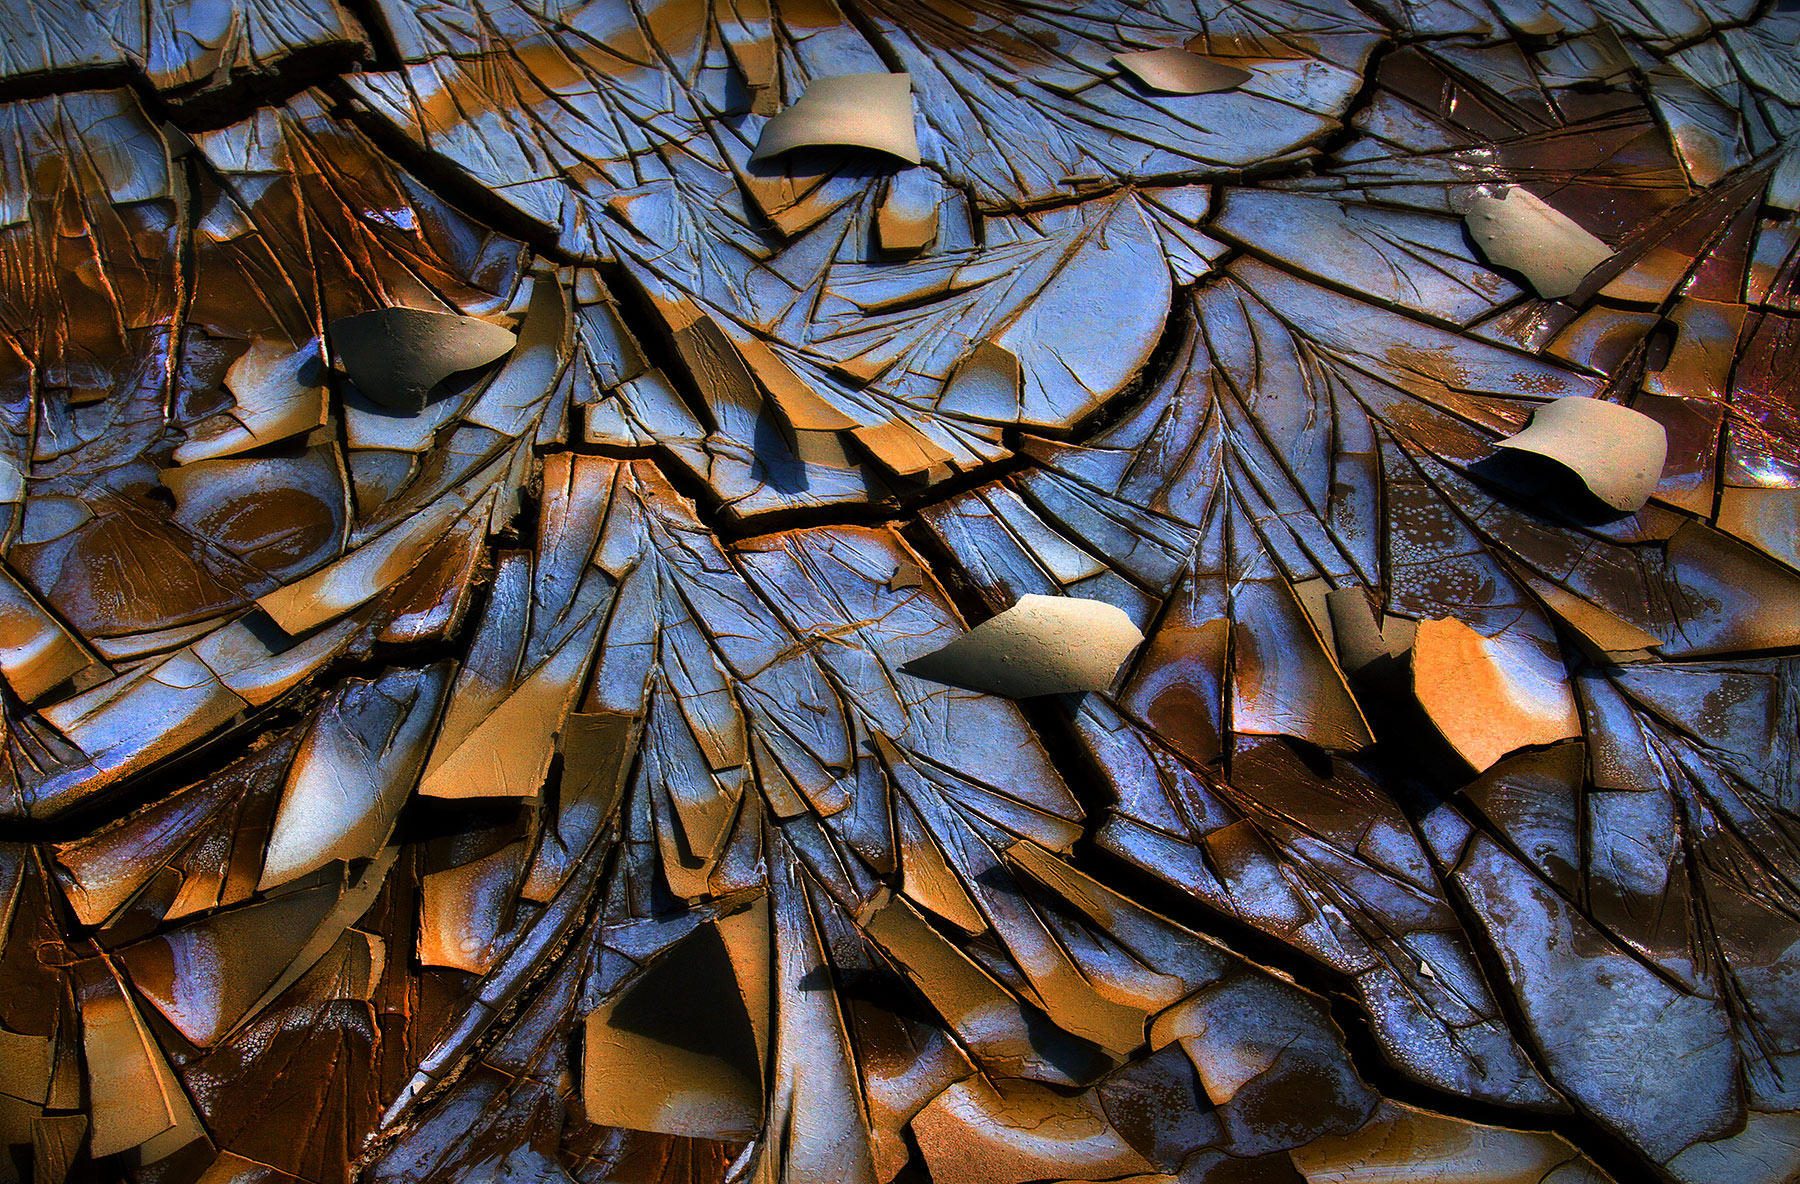 Cracked, desert, abstract, playa, oregon, photo